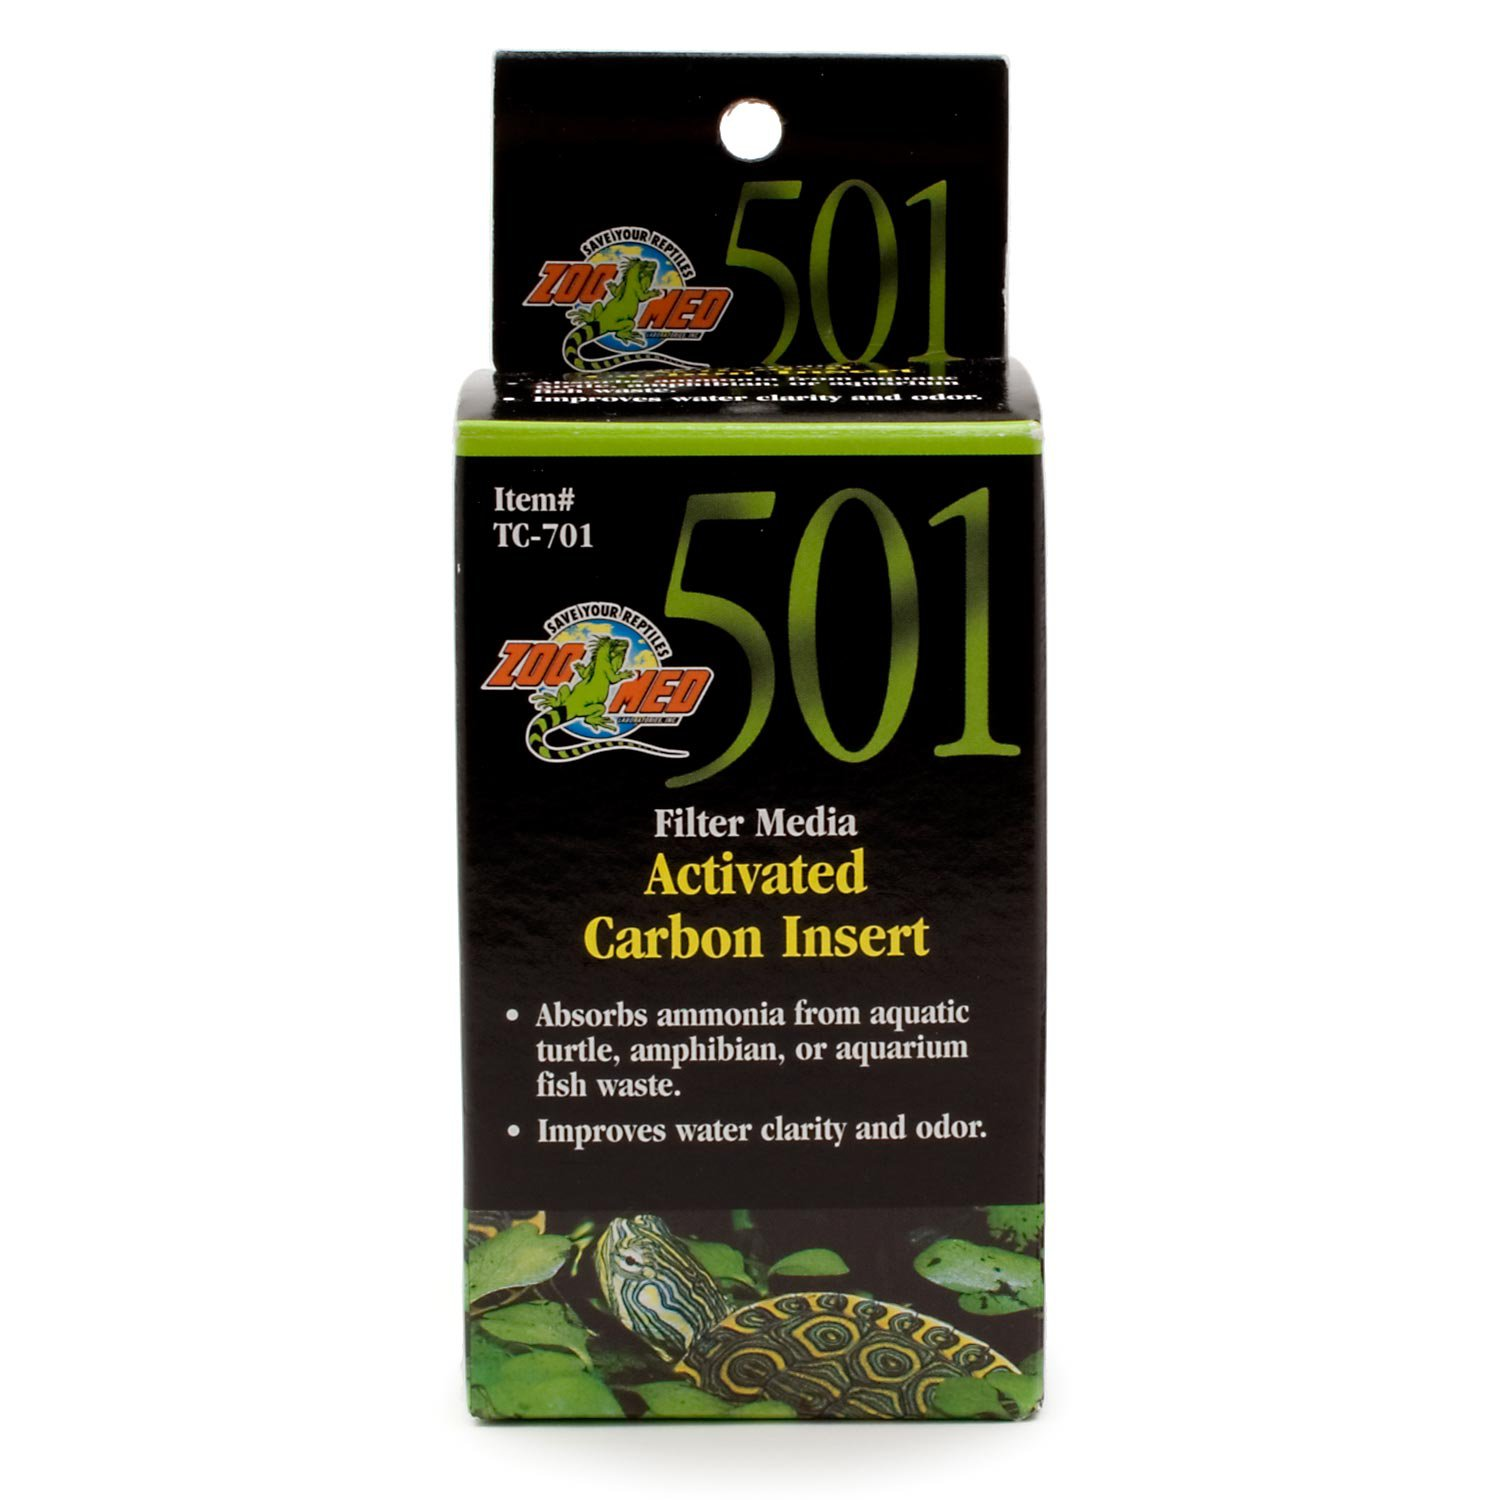 Zoo Med 501 Activated Carbon Insert Filter Media